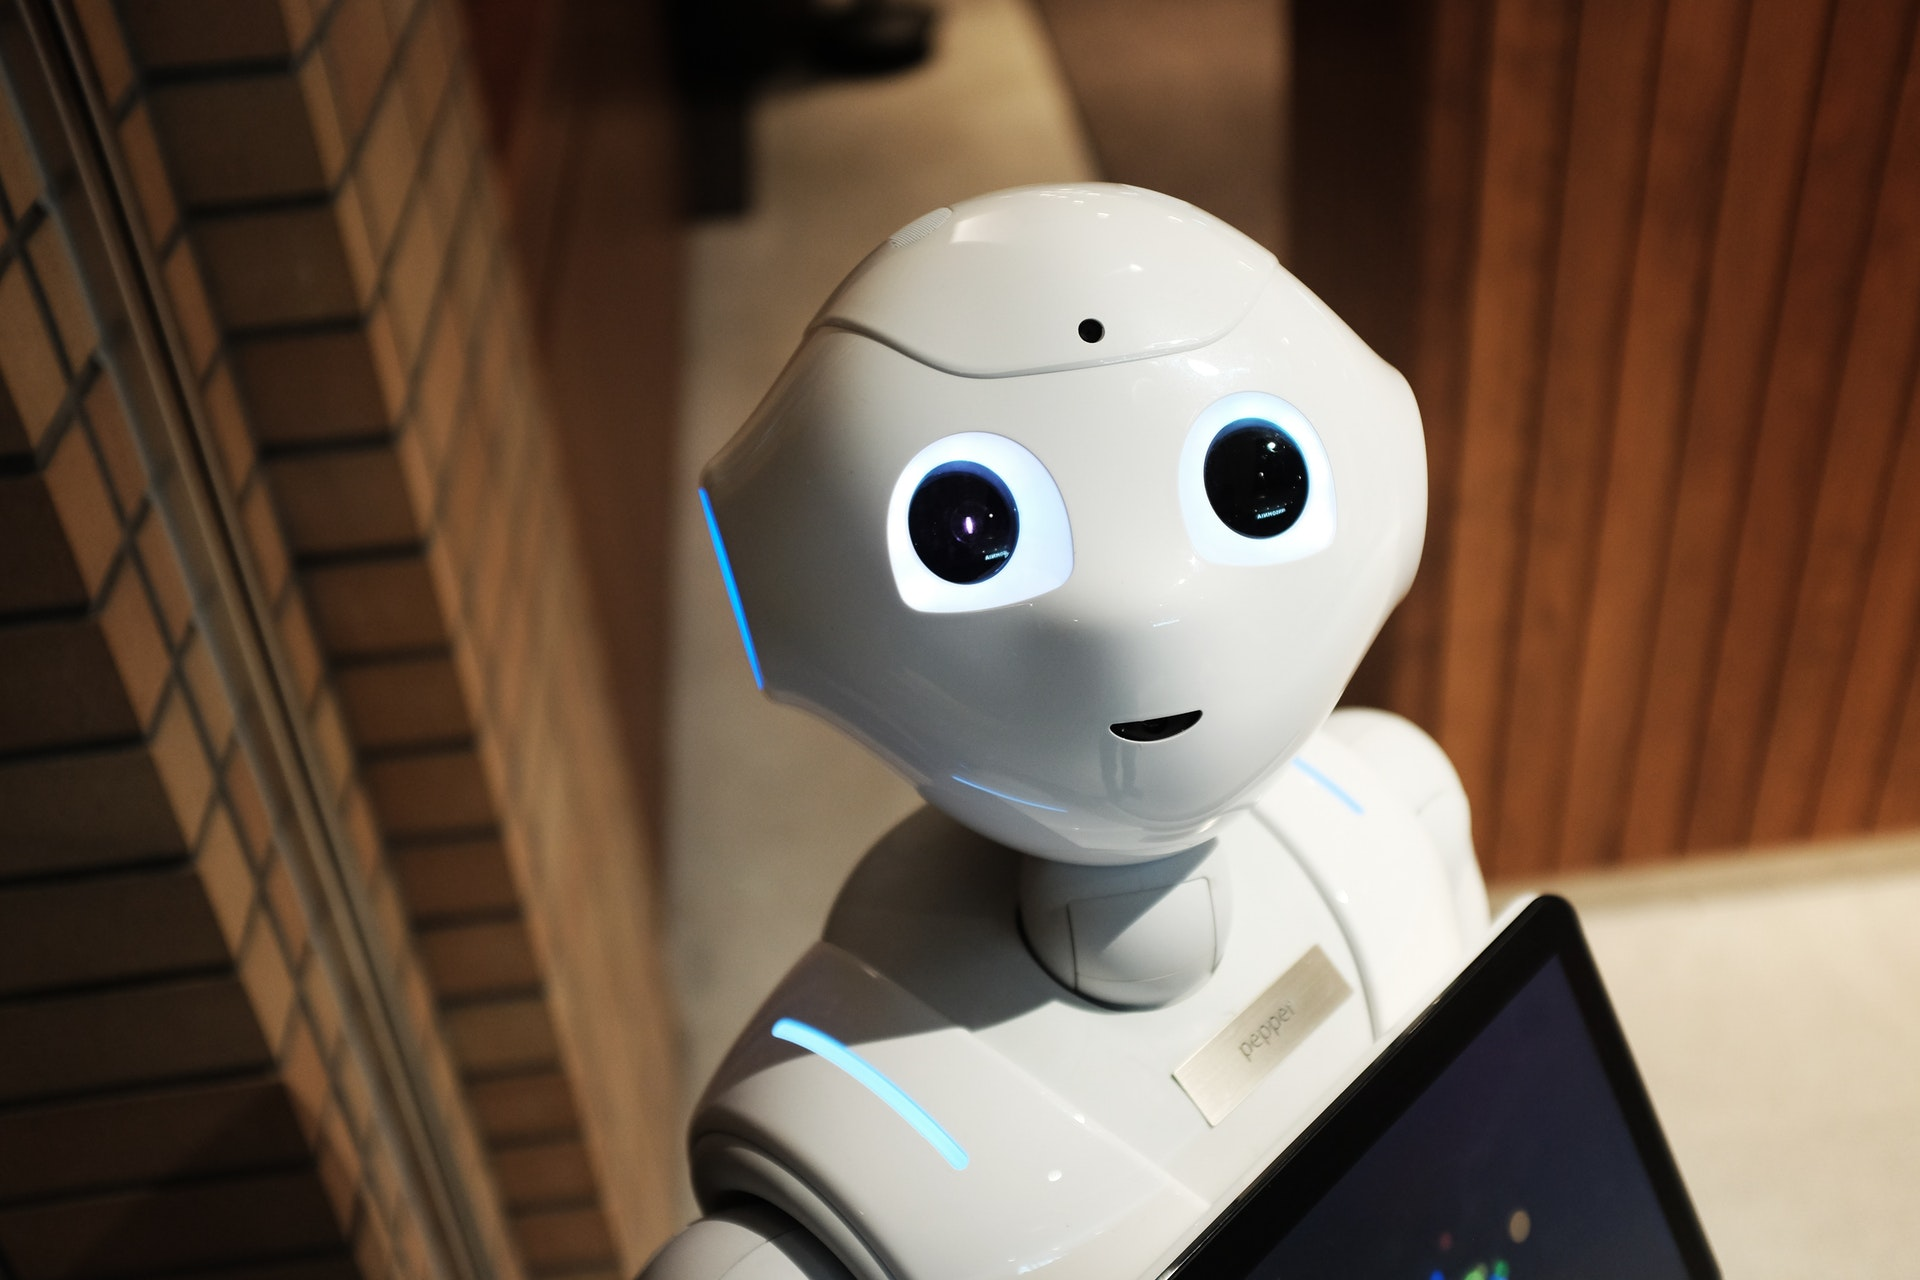 Here & Now: Artificial Intelligence & COVID-19